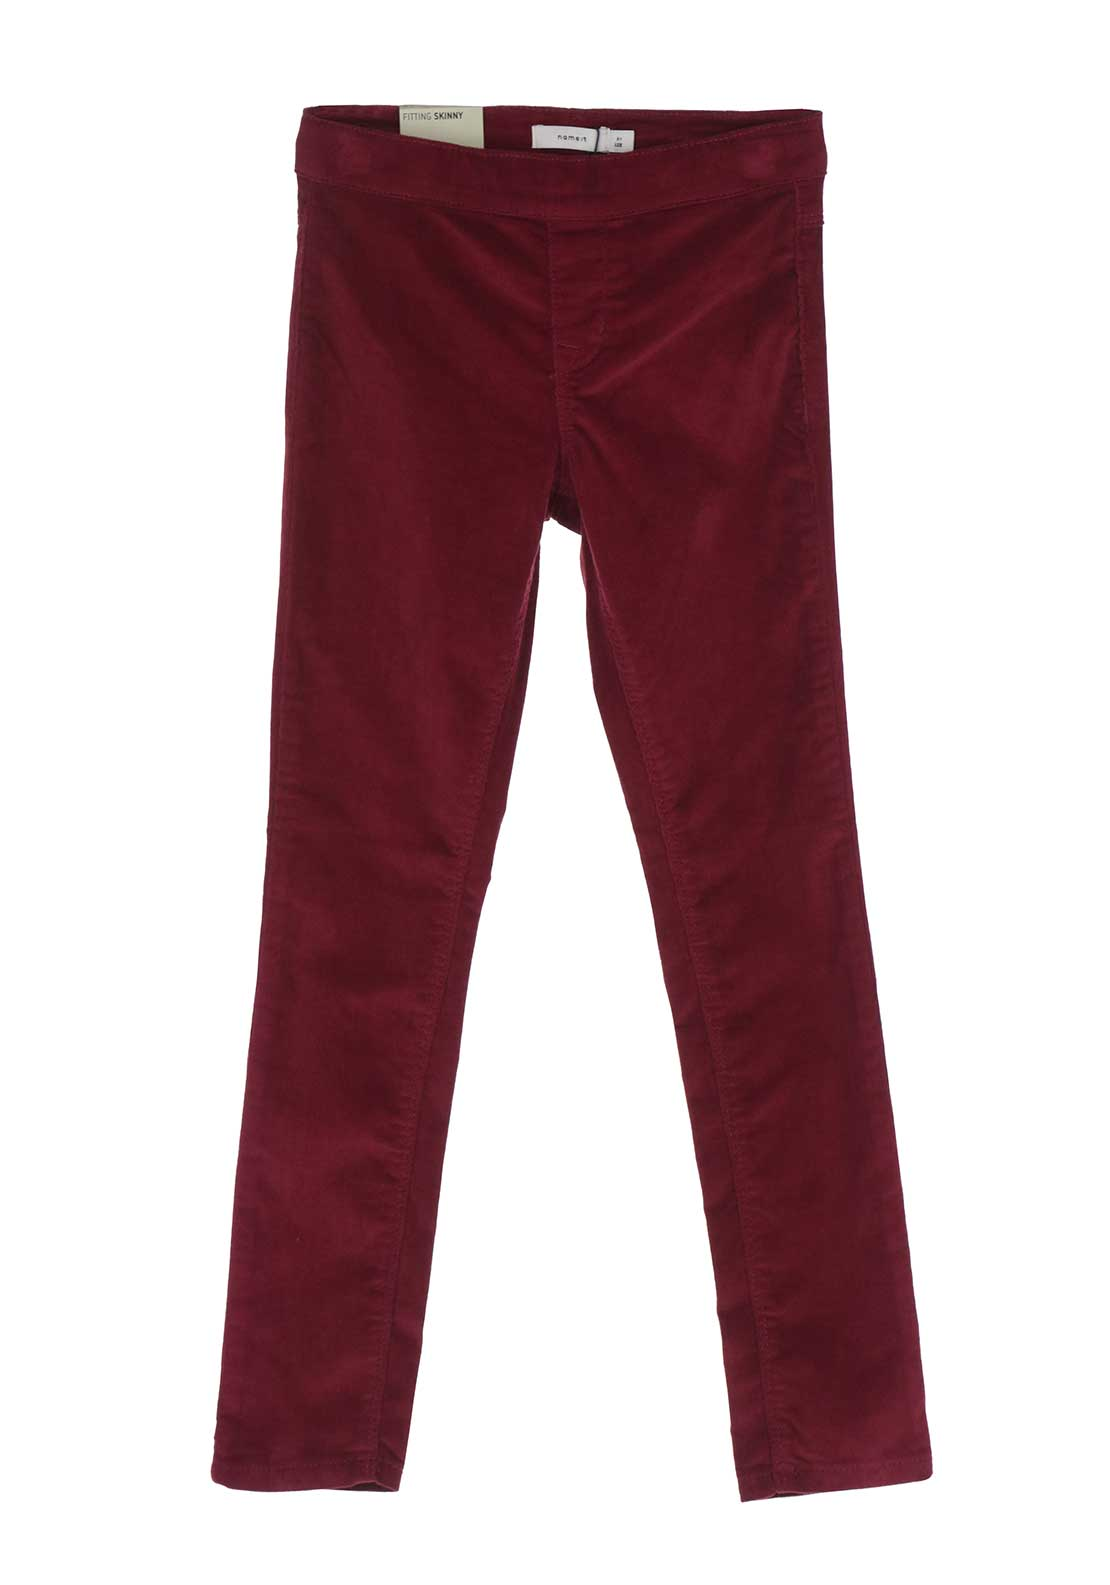 Name It Girls Lone Skinny Cord Leggings, Wine